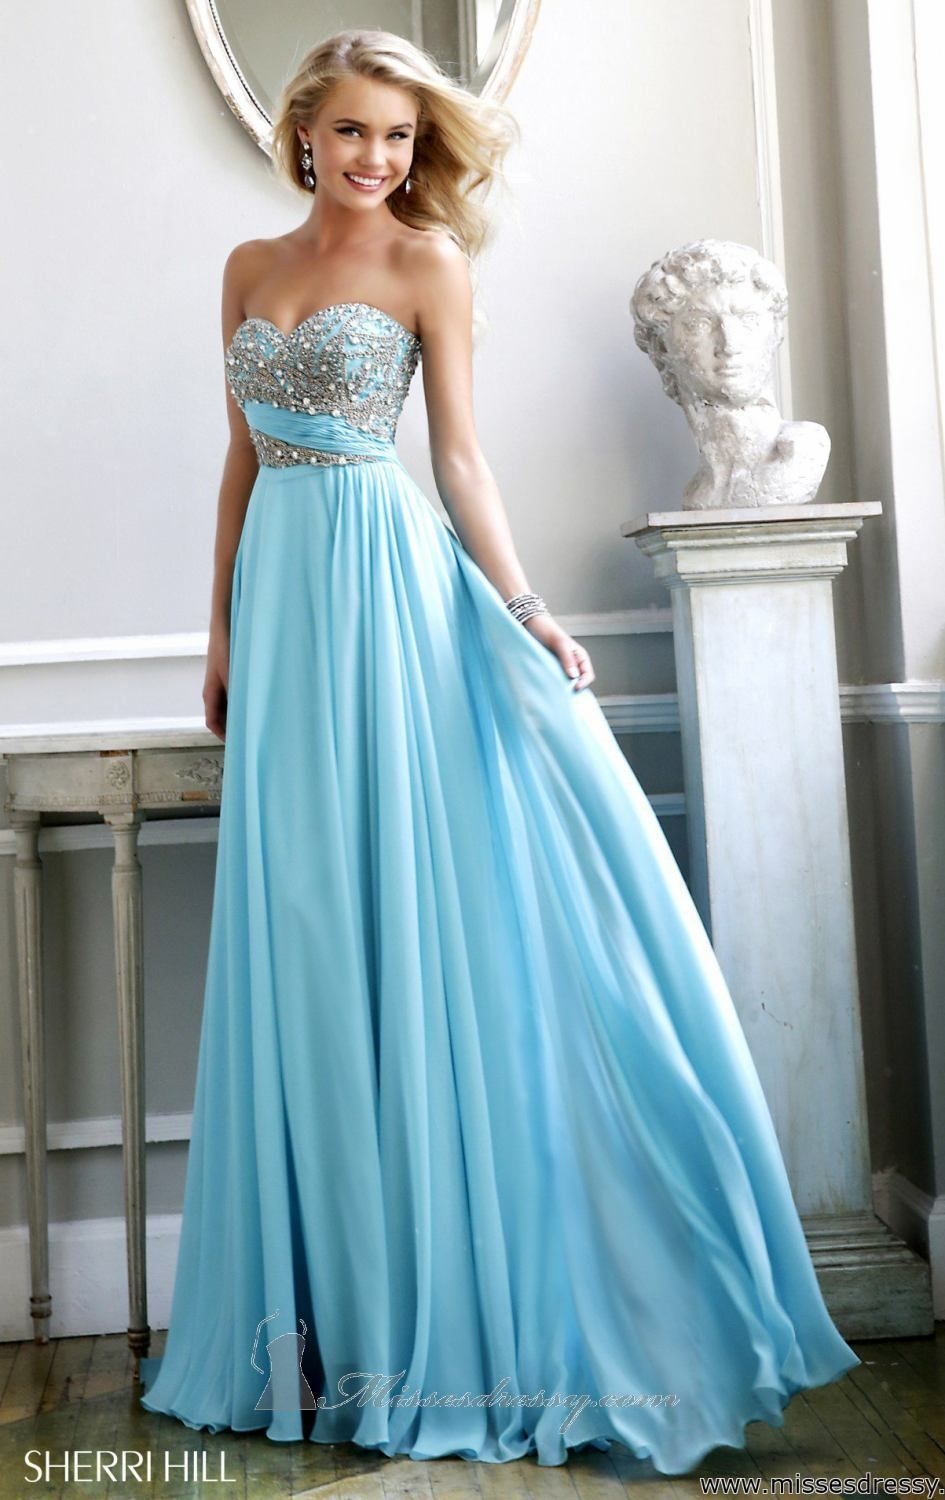 Pin by chelsea hogg on prom dresses pinterest prom homecoming